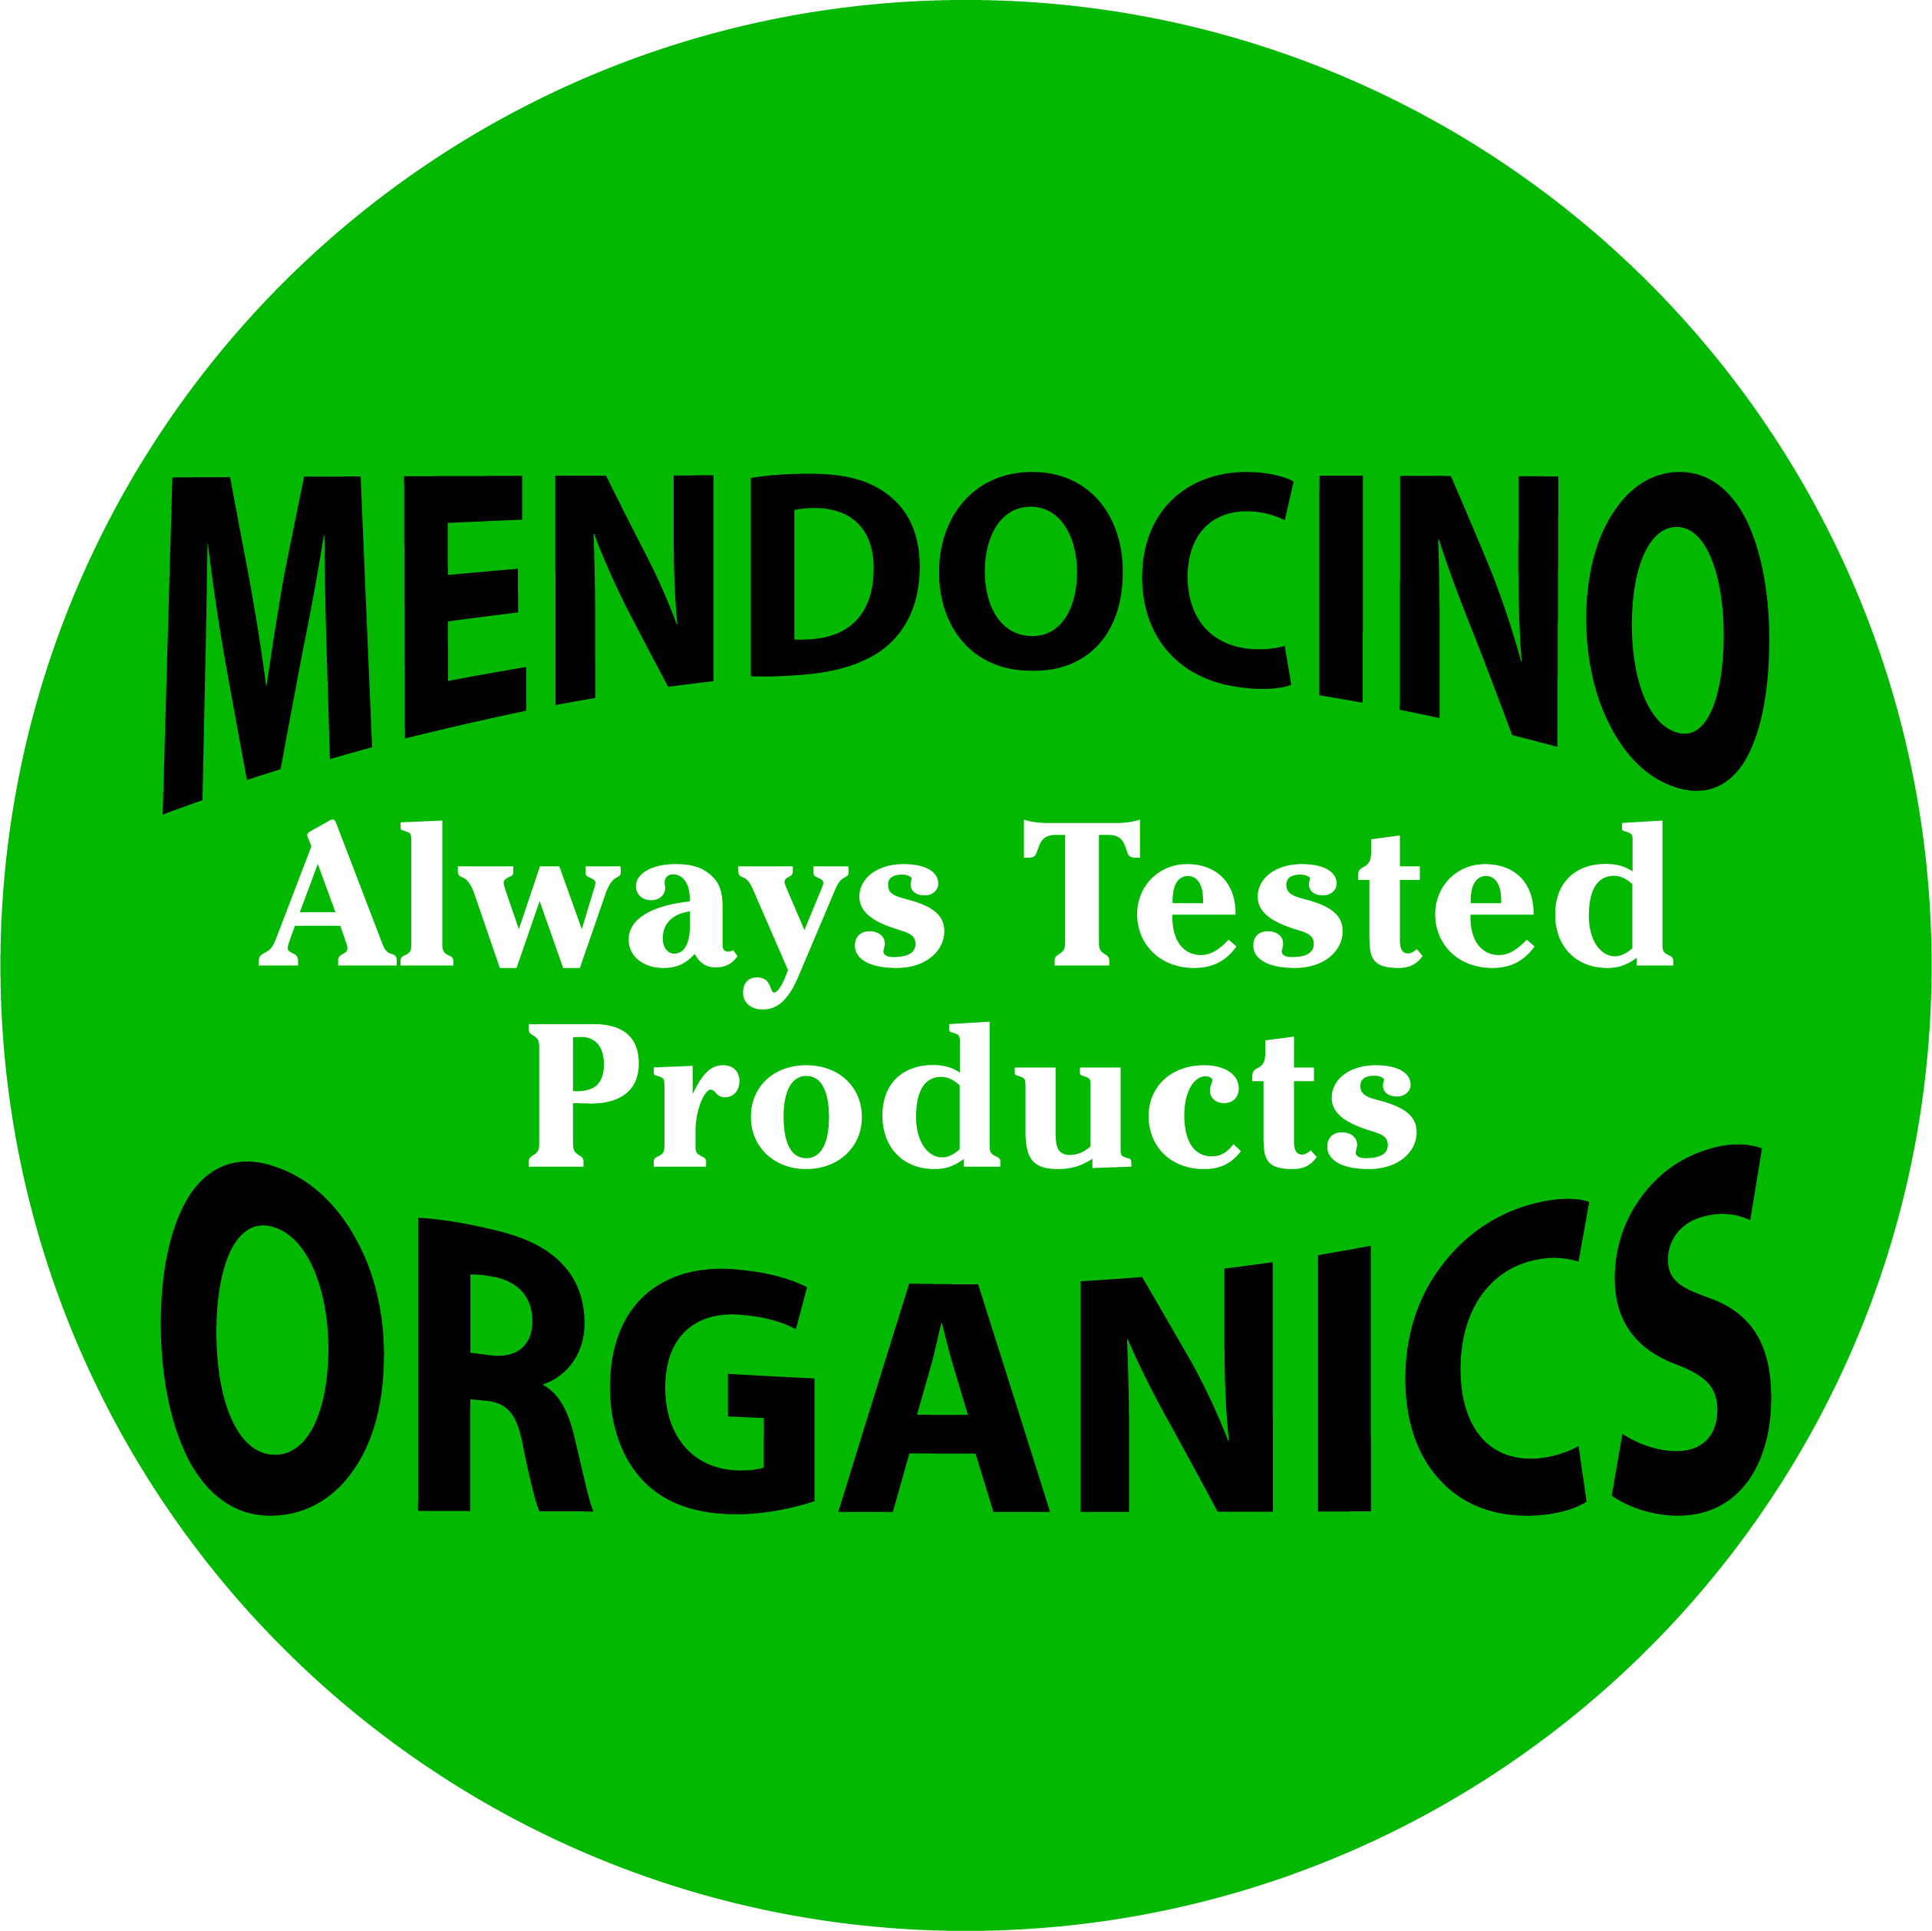 Mendocino Organics - Medical Marijuana Doctors - Cannabizme.com